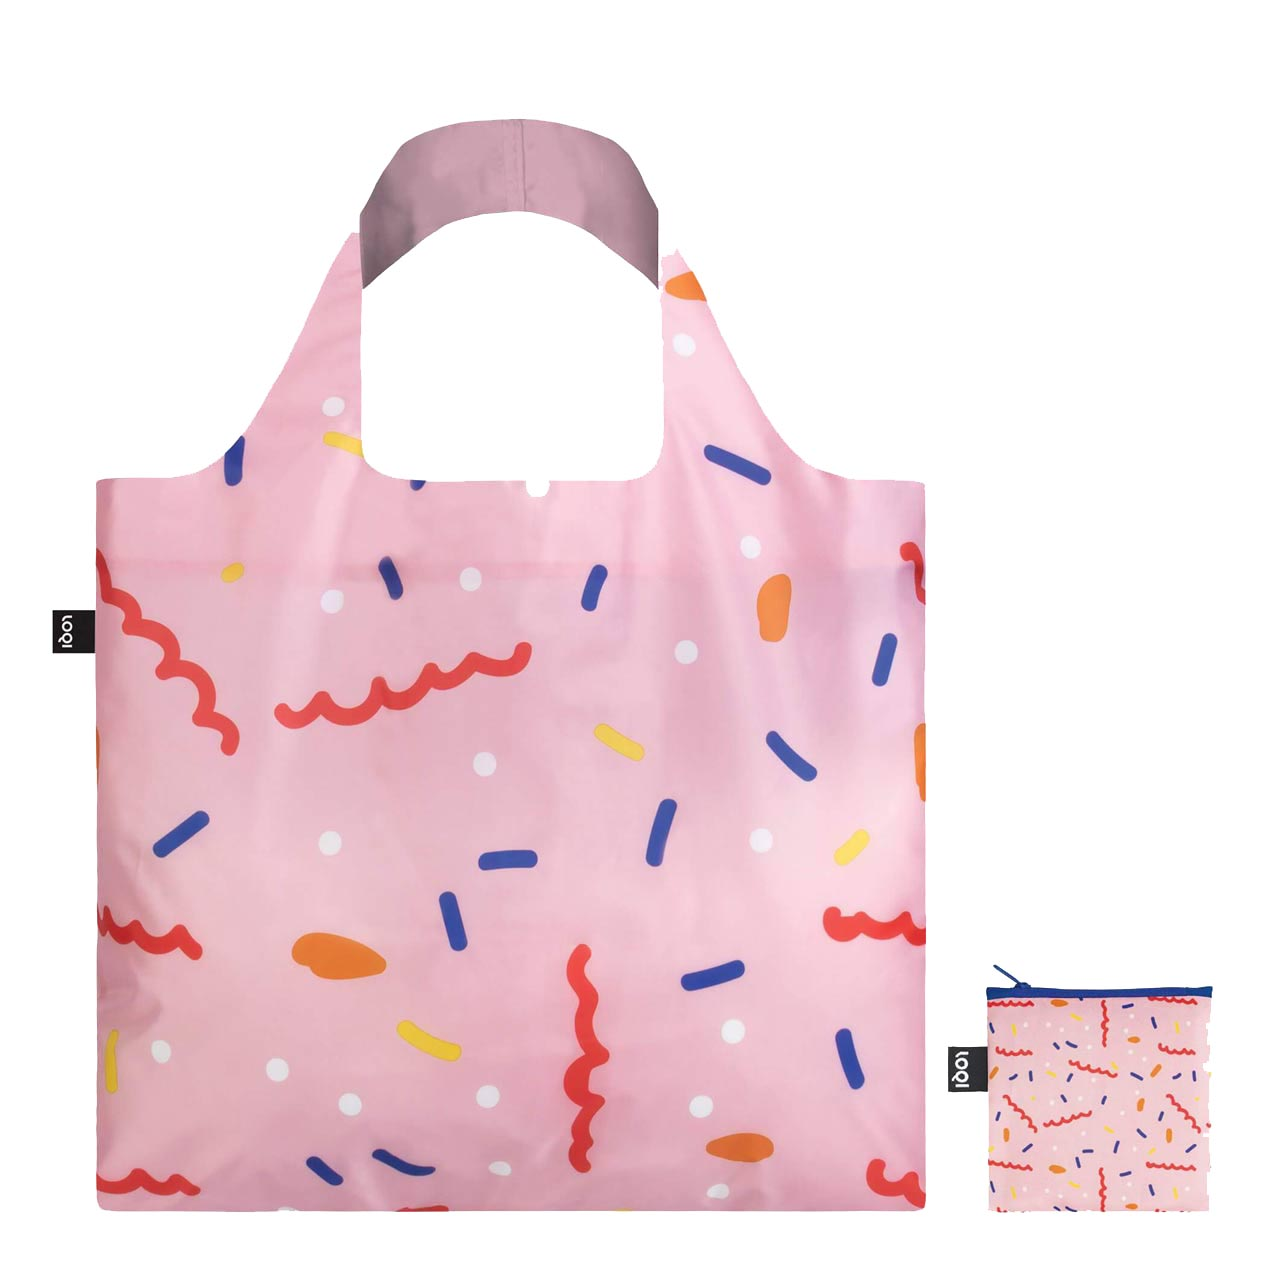 Celeste Wallaert Confetti Bag and zip purse.